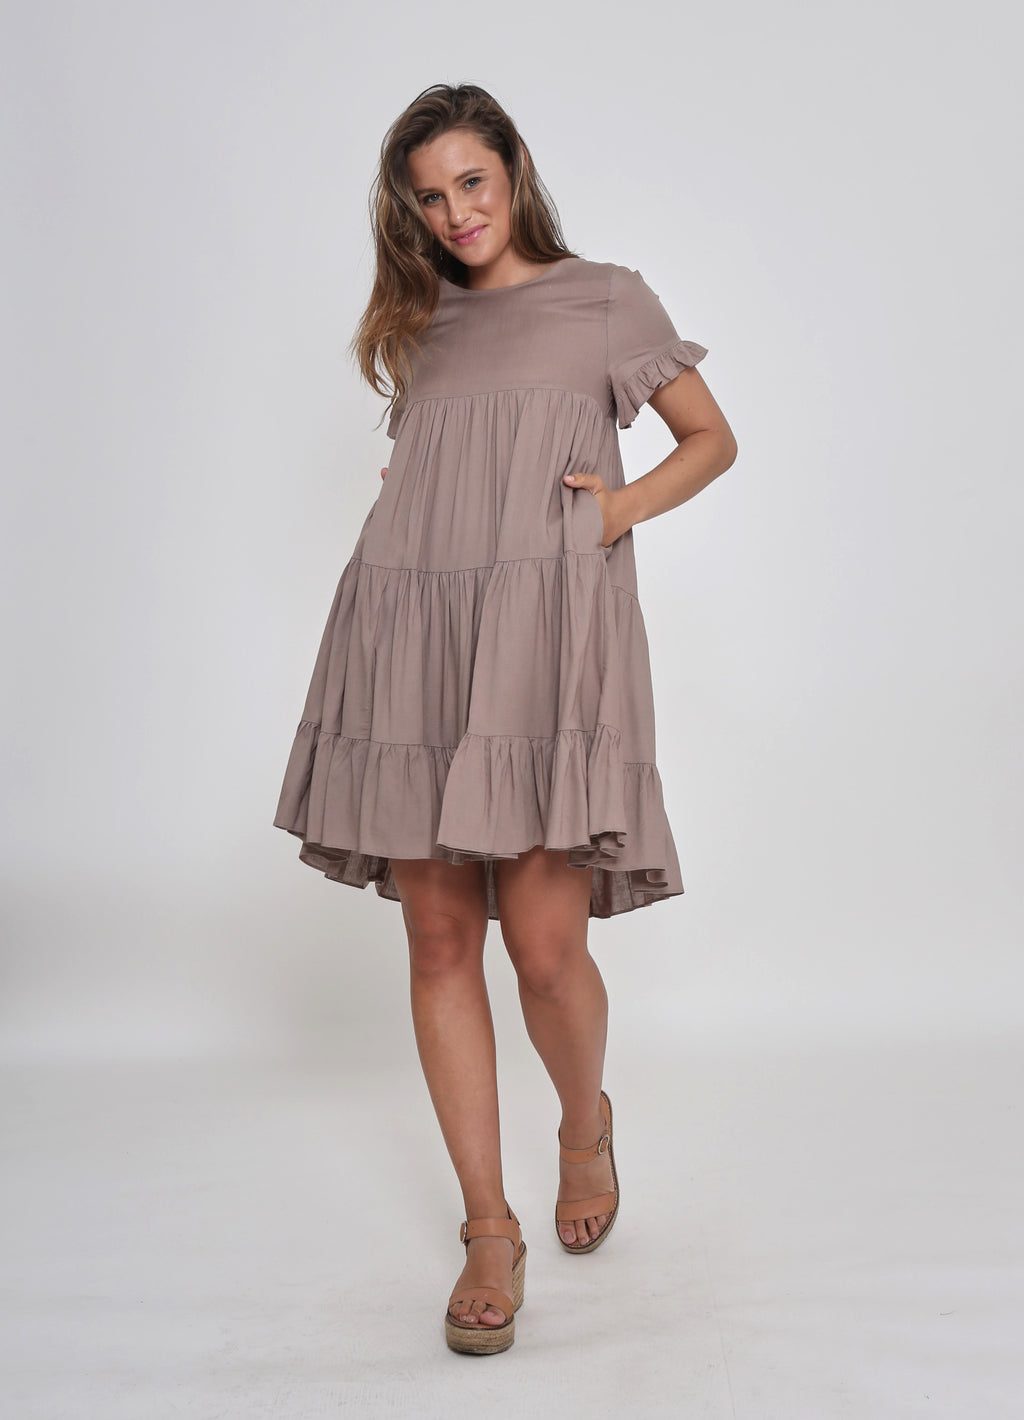 NEW - FINLEY DRESS - MOCHA MELODY